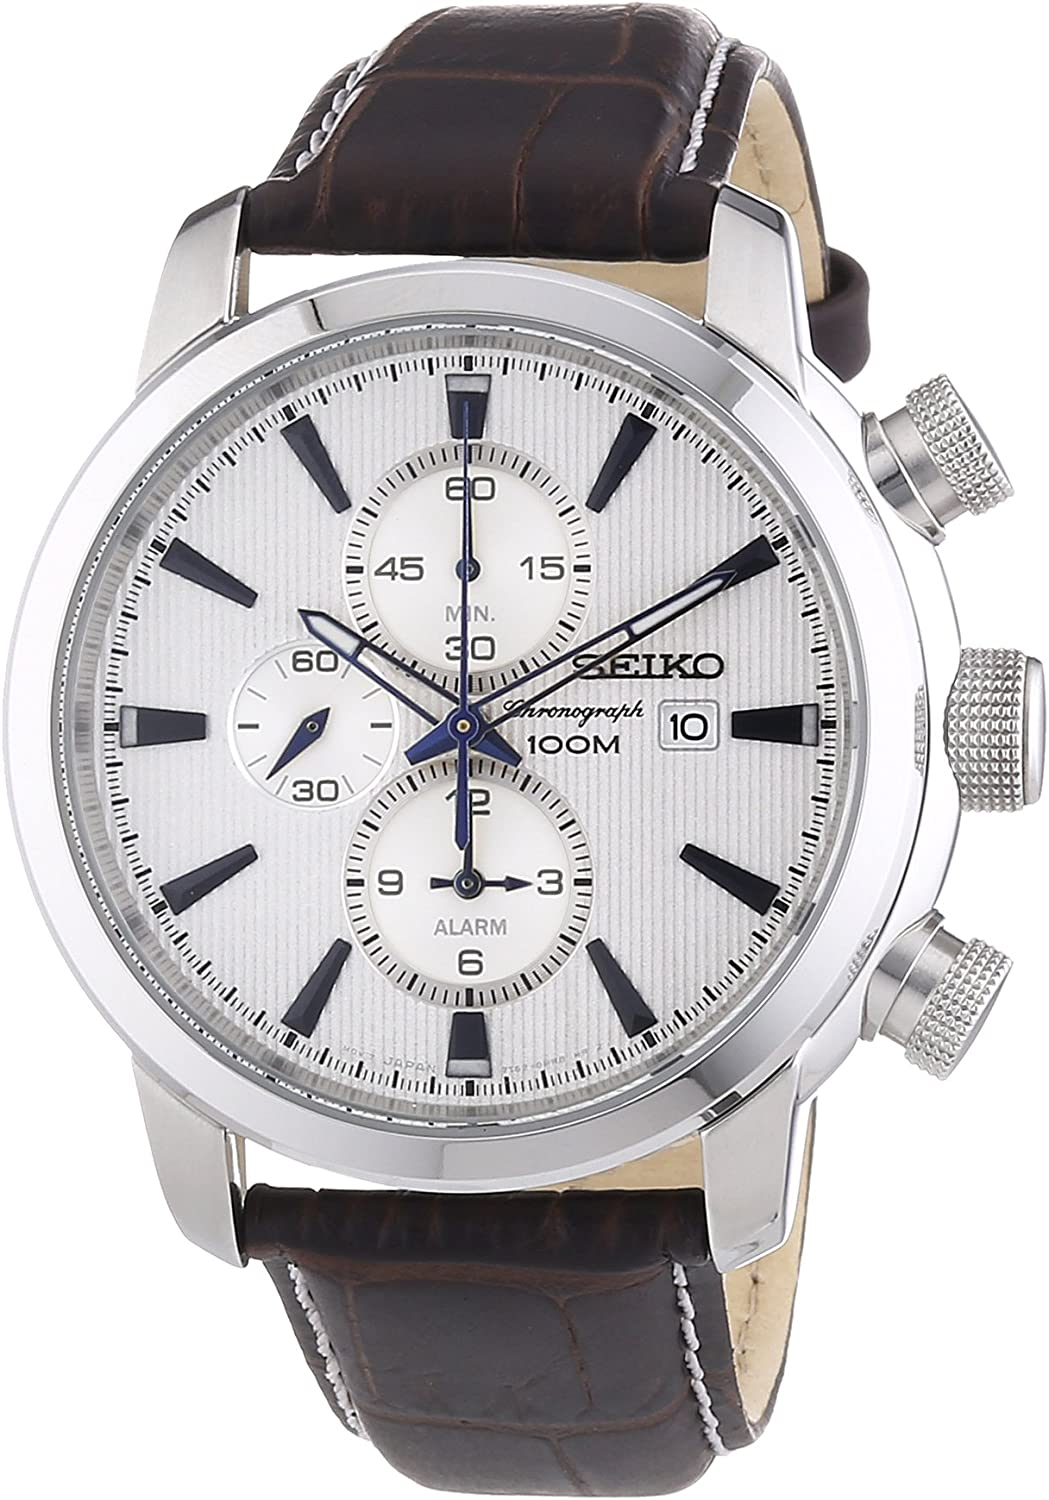 Watch Seiko Neo Sports Snaf51p1 Men s White